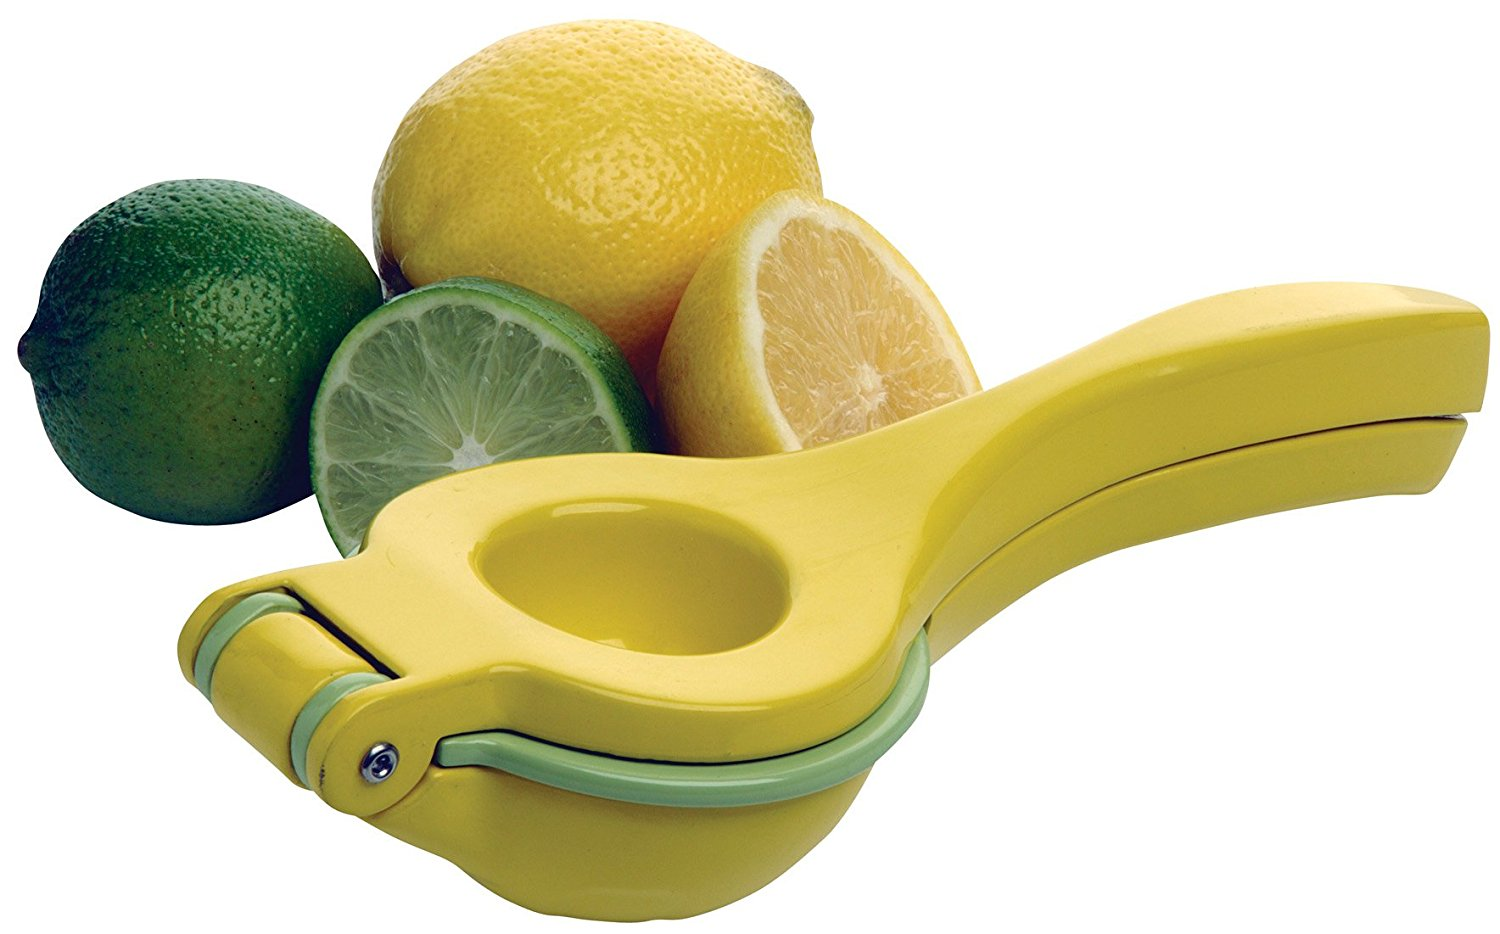 8-Inch Two-in-One Citrus Squeezer (8720), Amco's 2-in-1 juicer works with lemons or limes... by